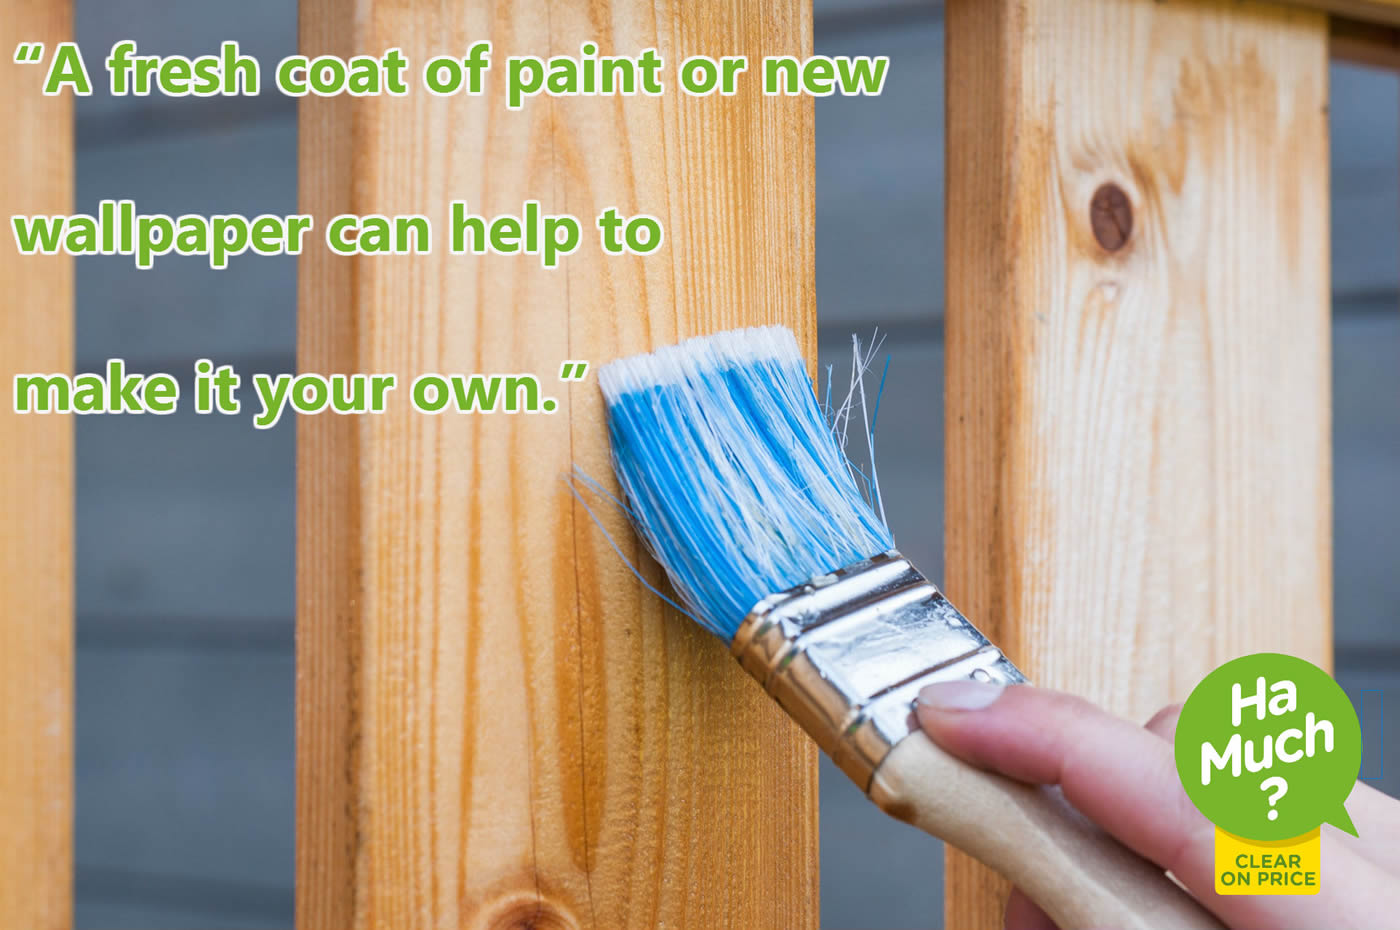 A fresh coat of paint or new wallpaper can help to make it your own